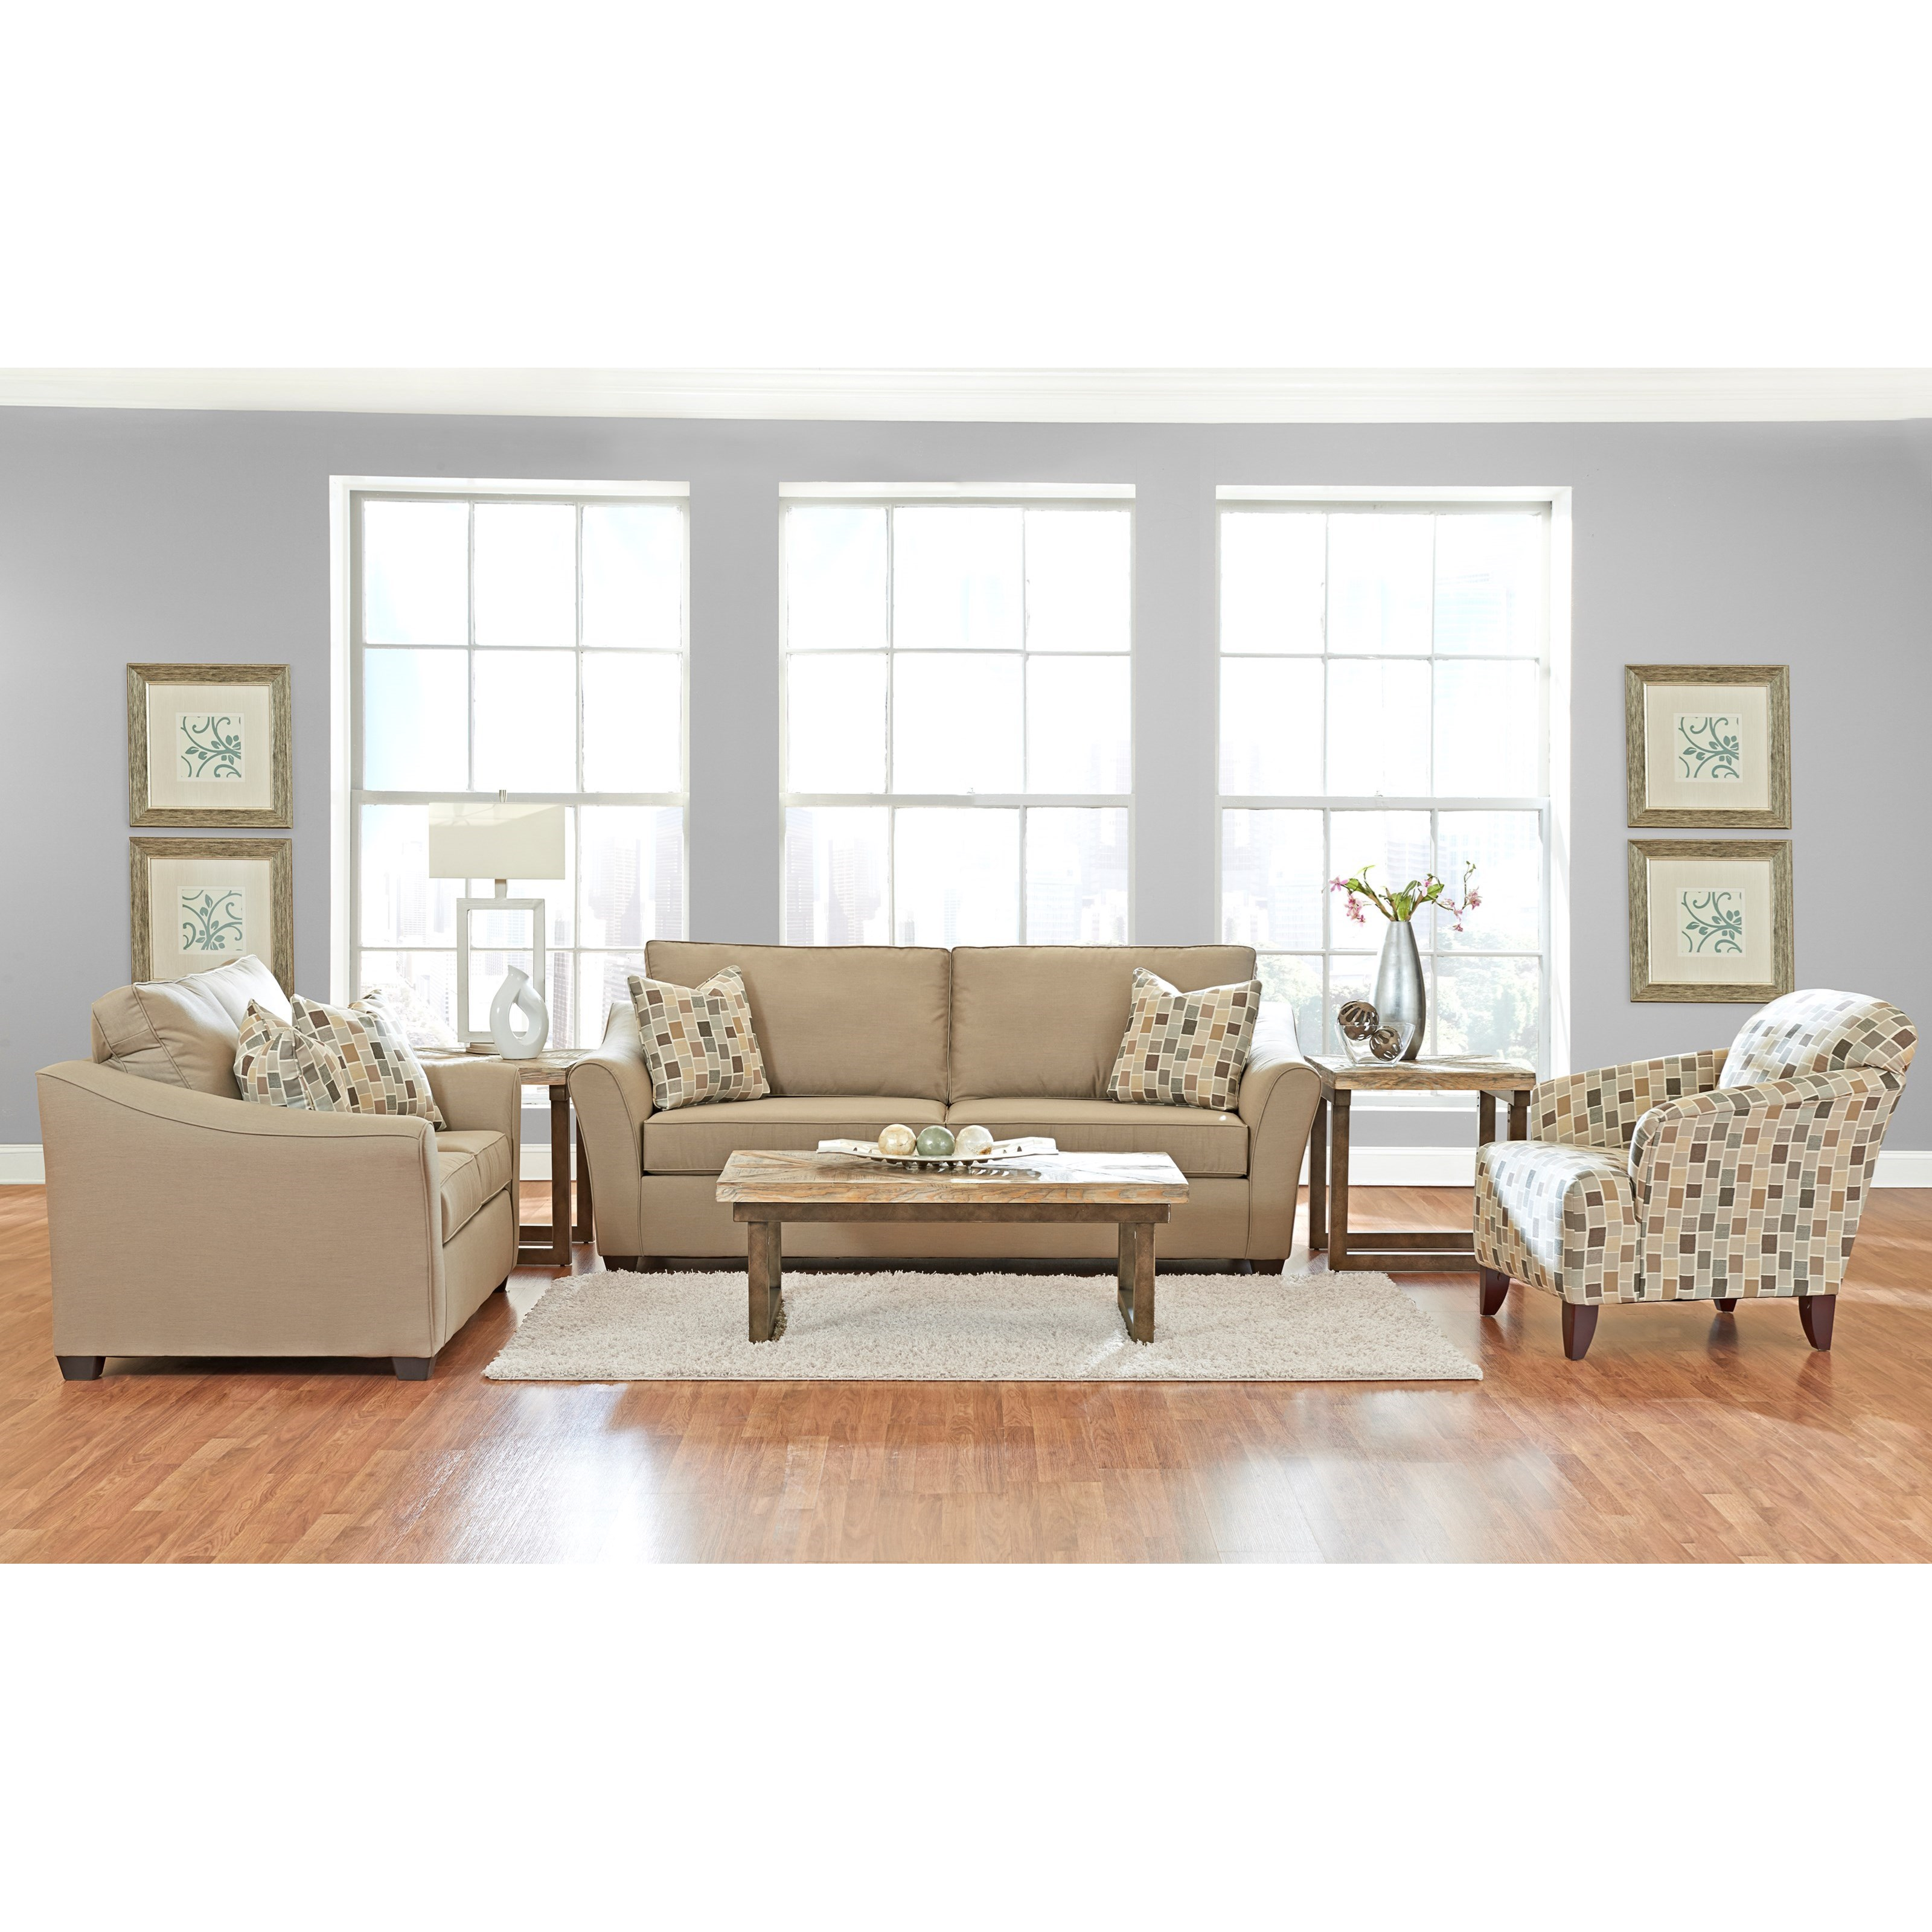 Linville Living Room Group by Klaussner at Johnny Janosik